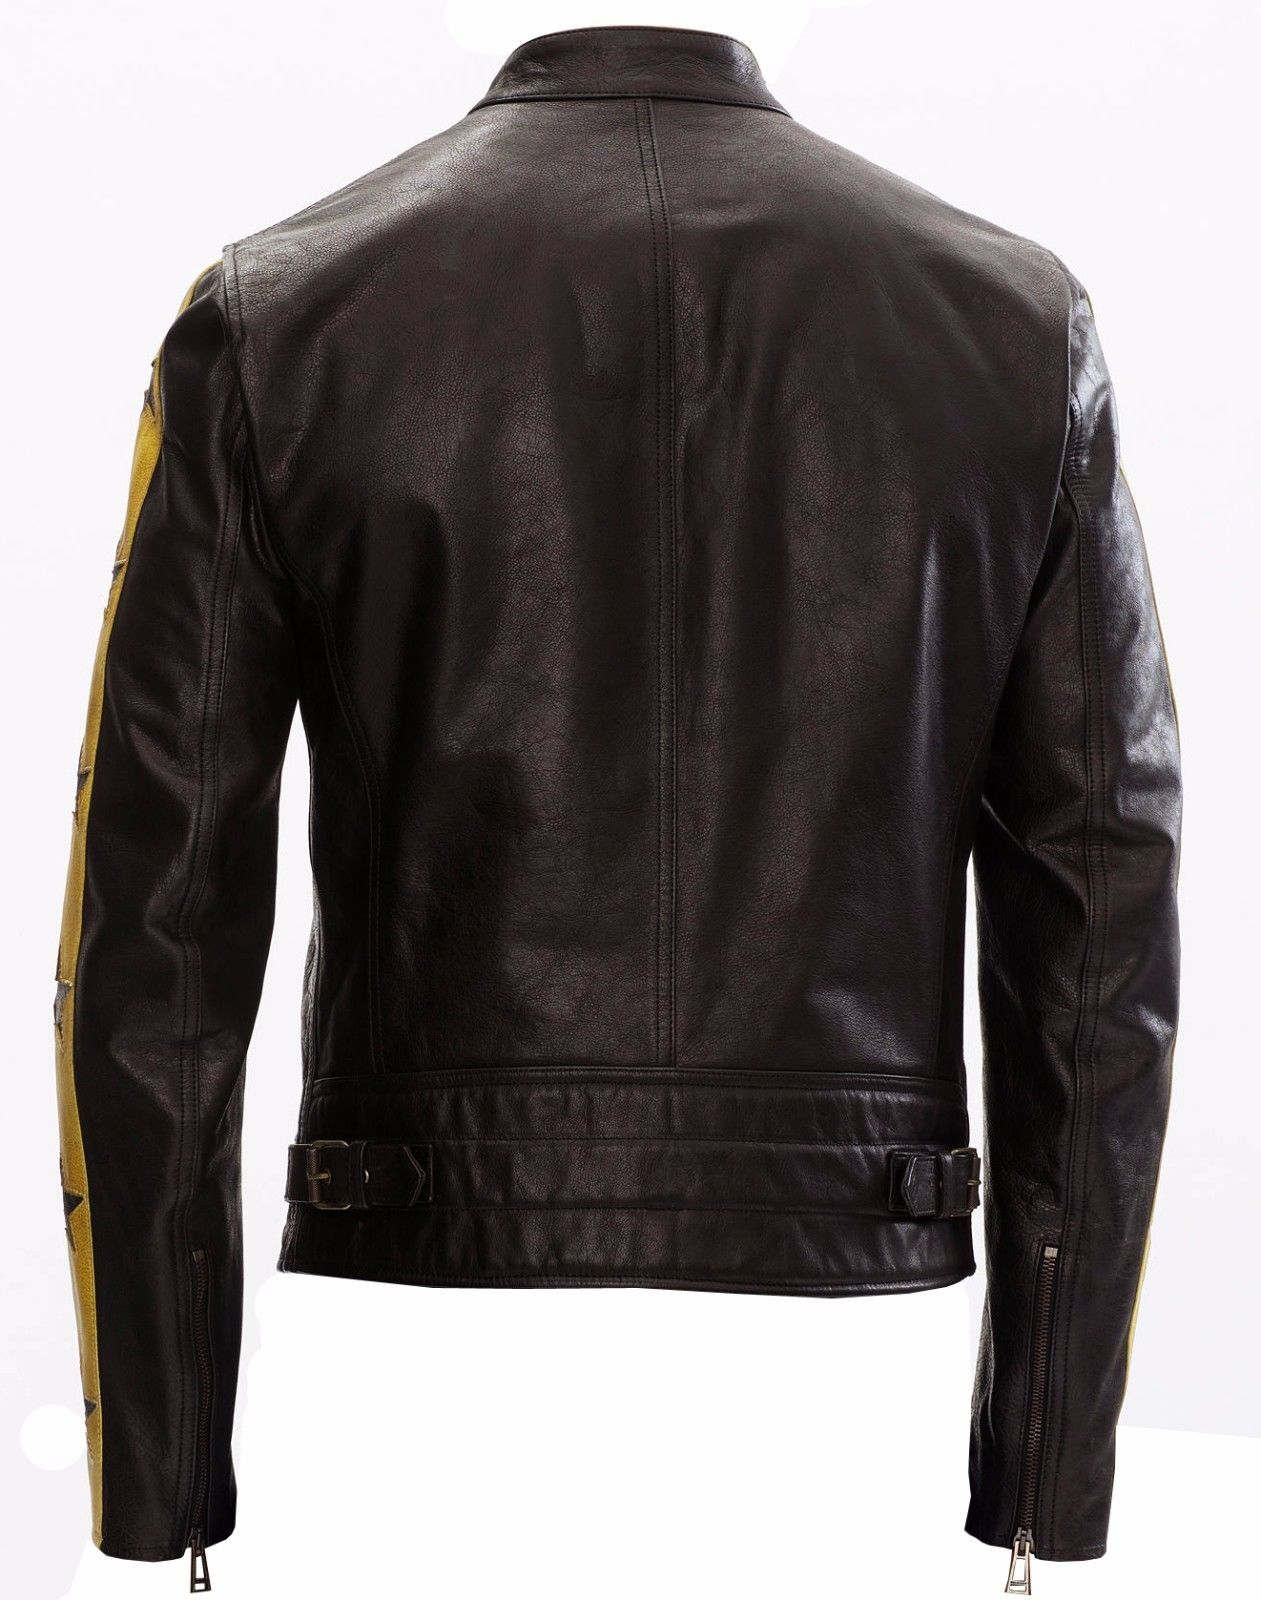 Mens Mashburn Biker Leather Jackets -2.jpg